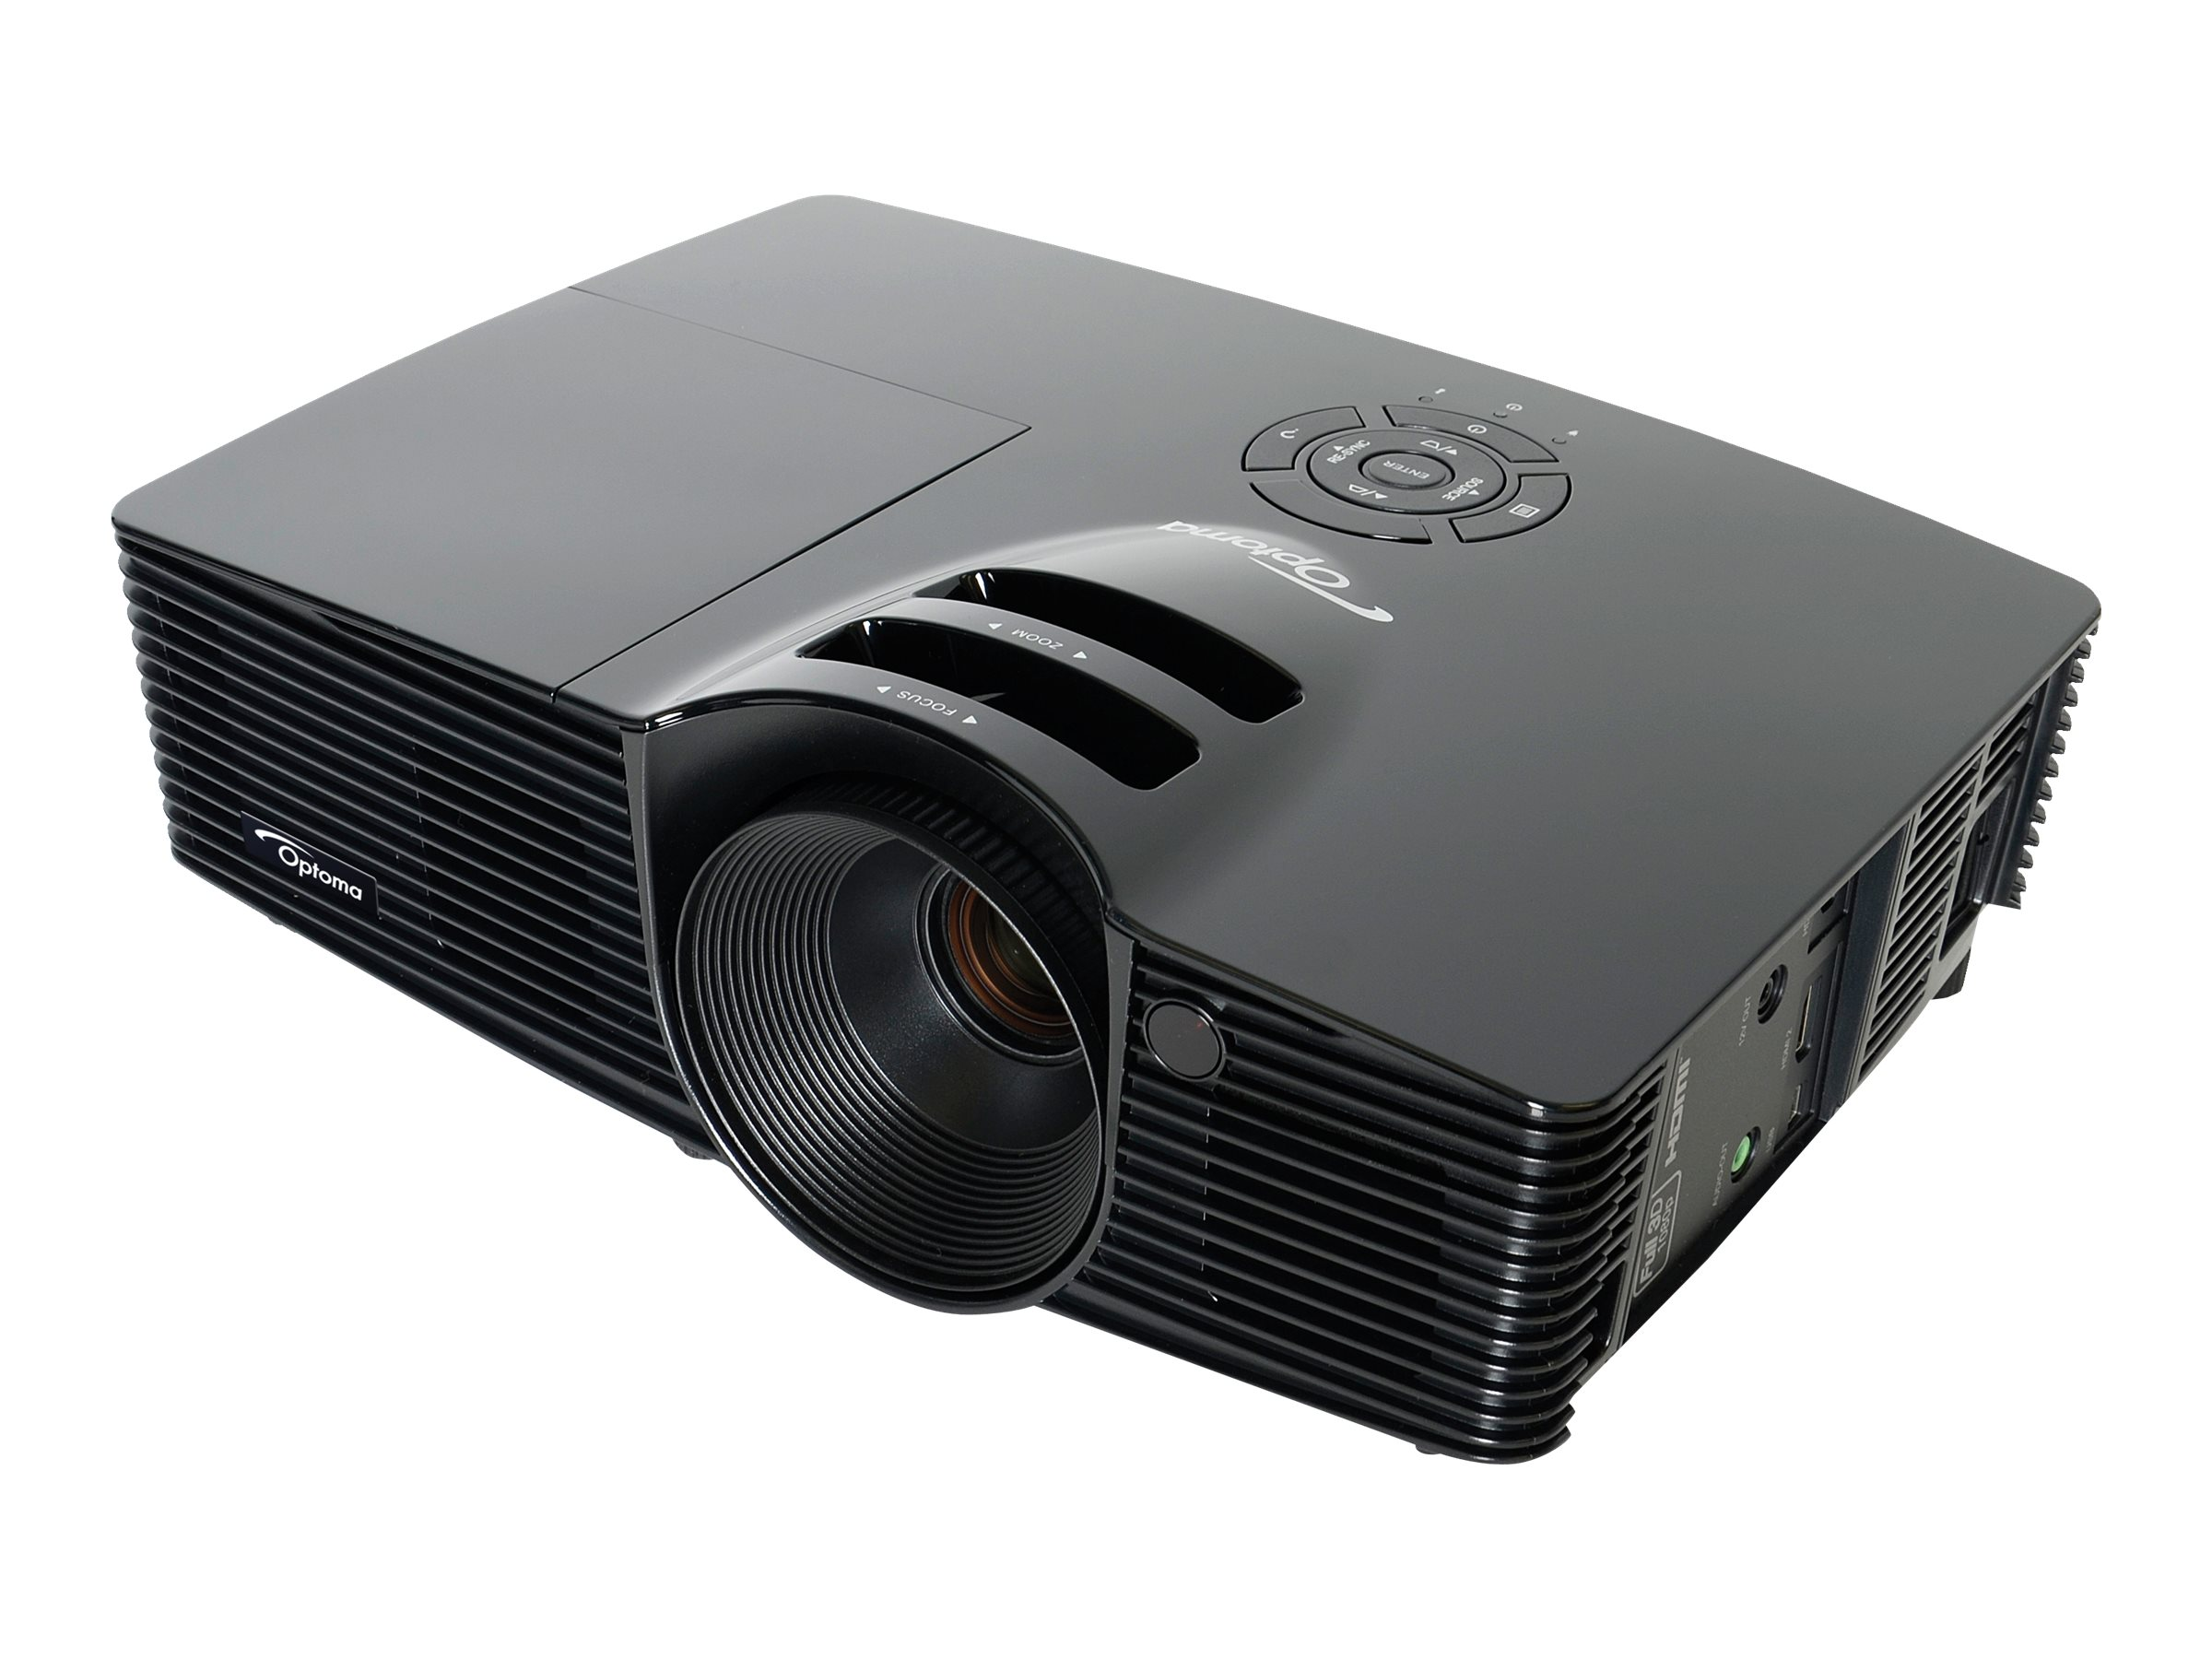 Refurb. Optoma HD141X Full HD DLP 3D Projector, 3000 Lumens, Black